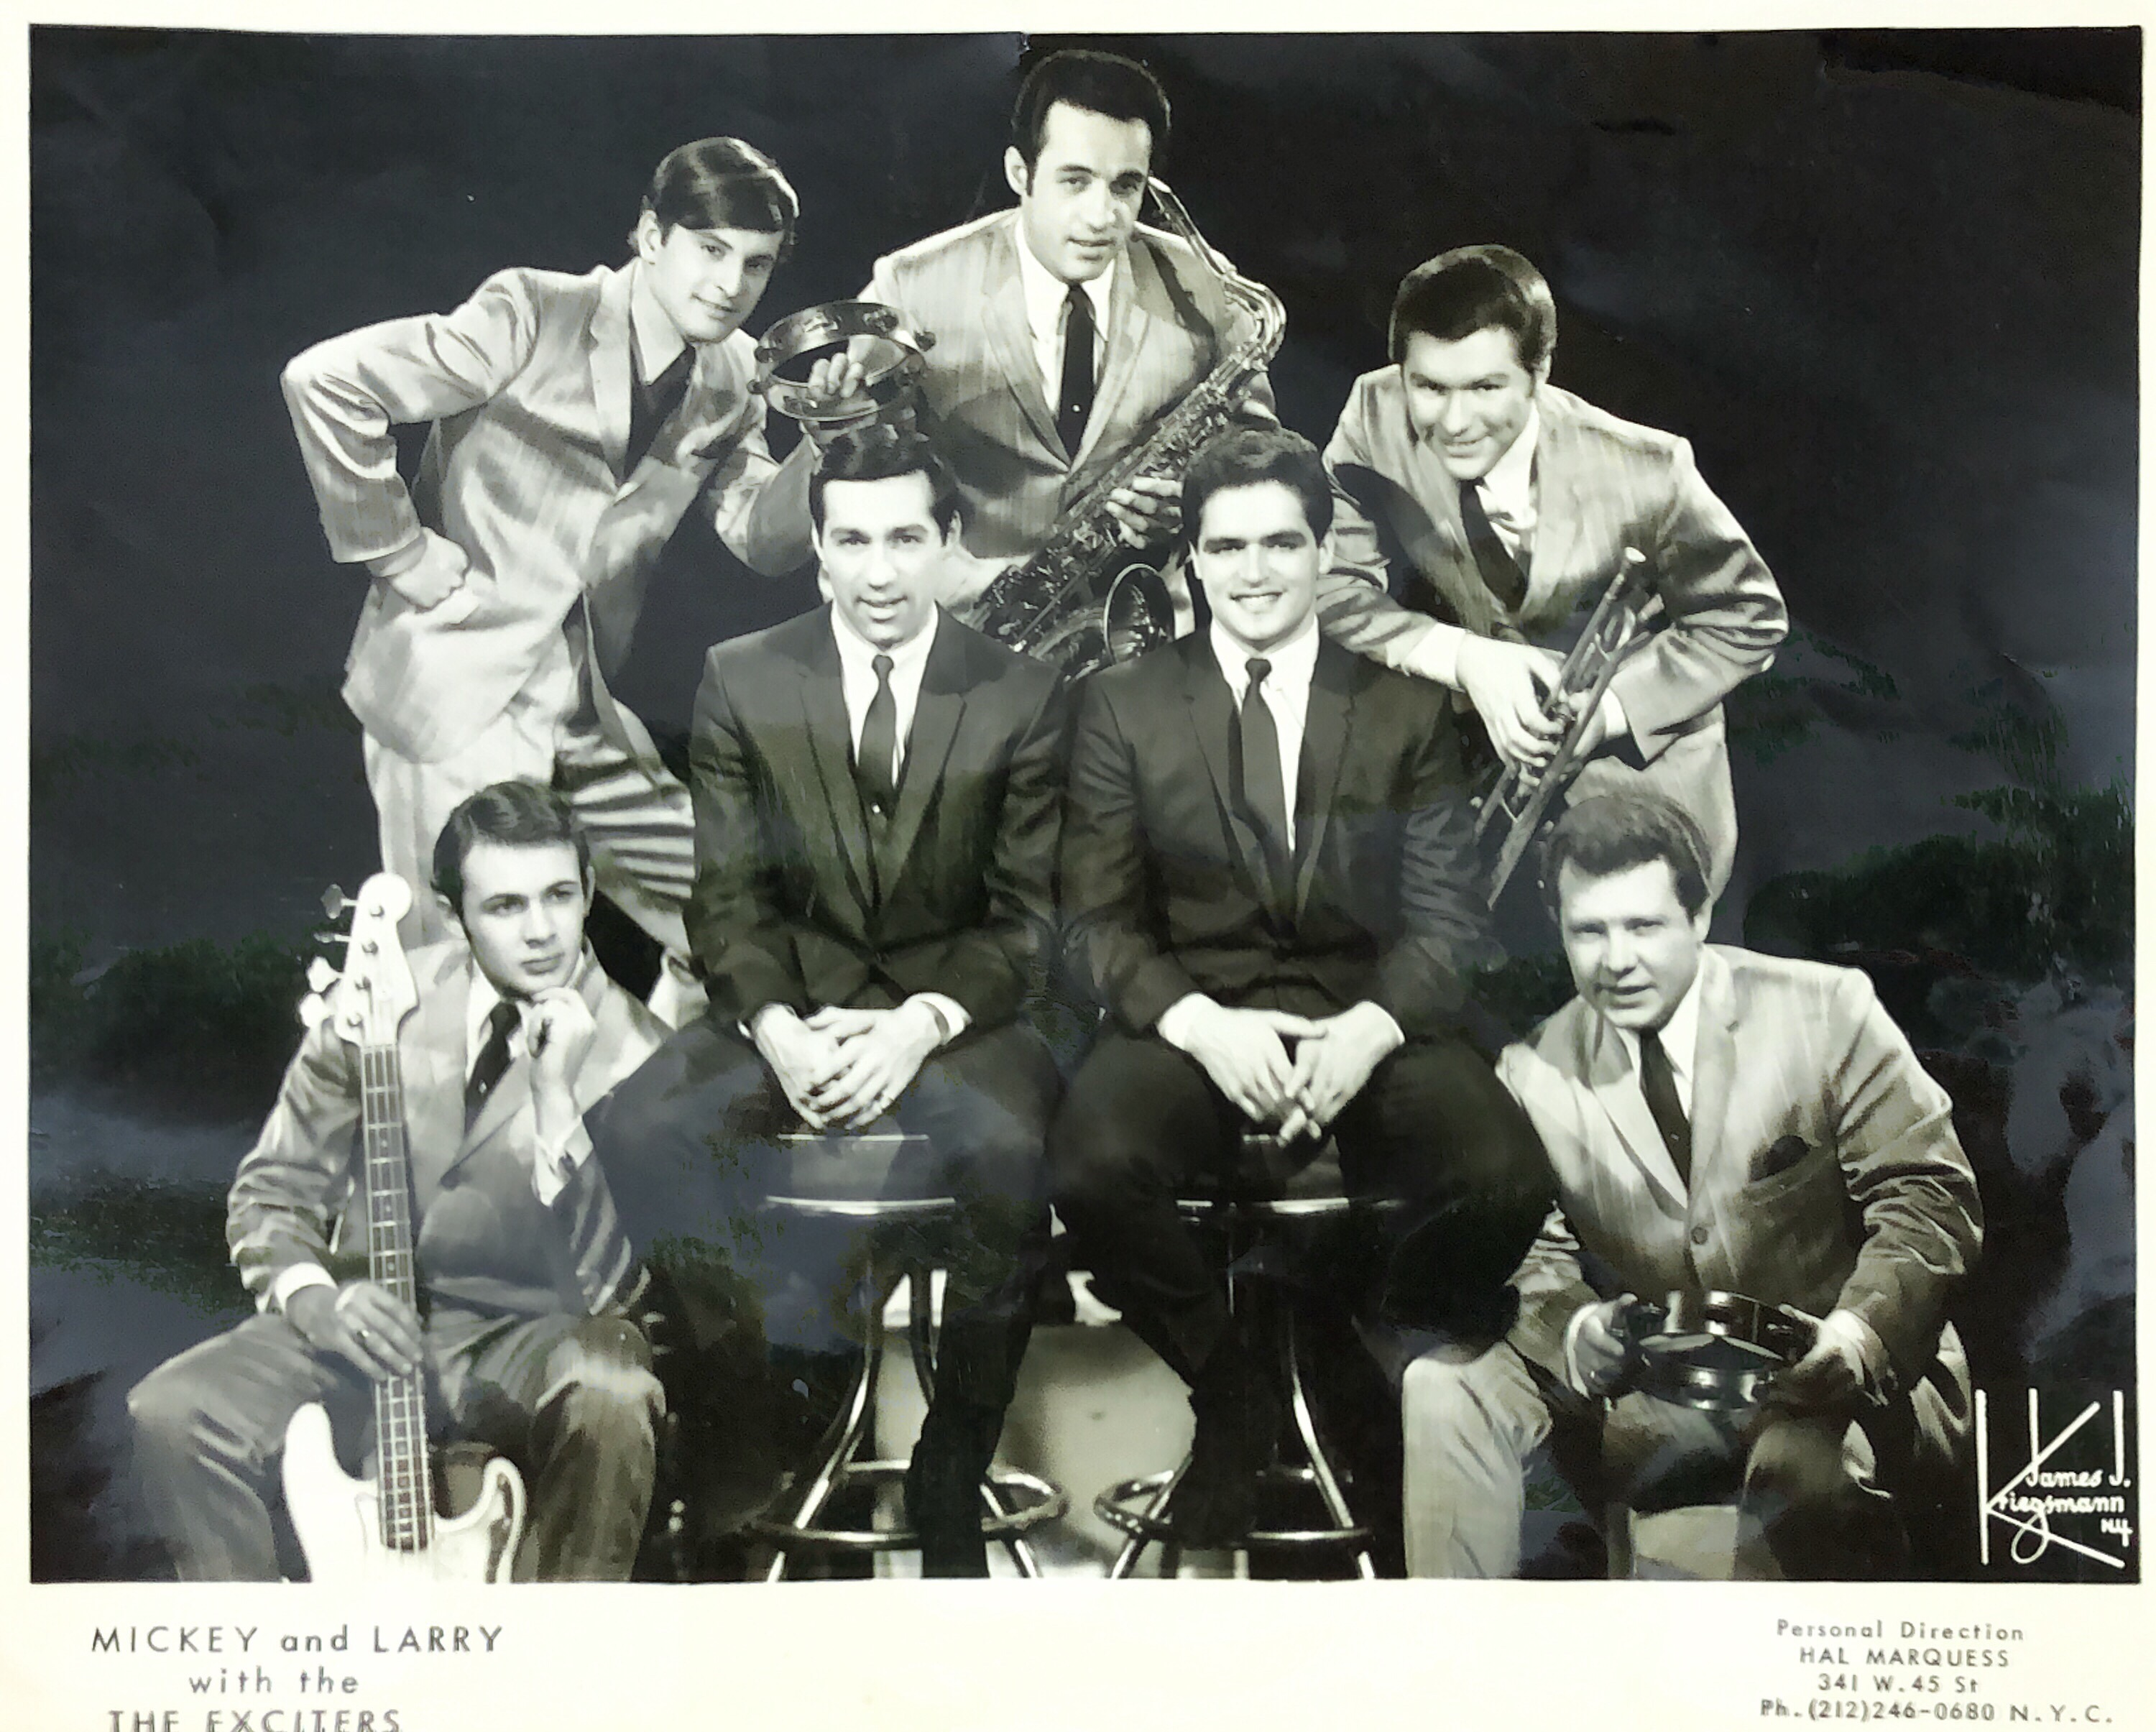 David DeArmond with Mickey, Larry and the Exciters